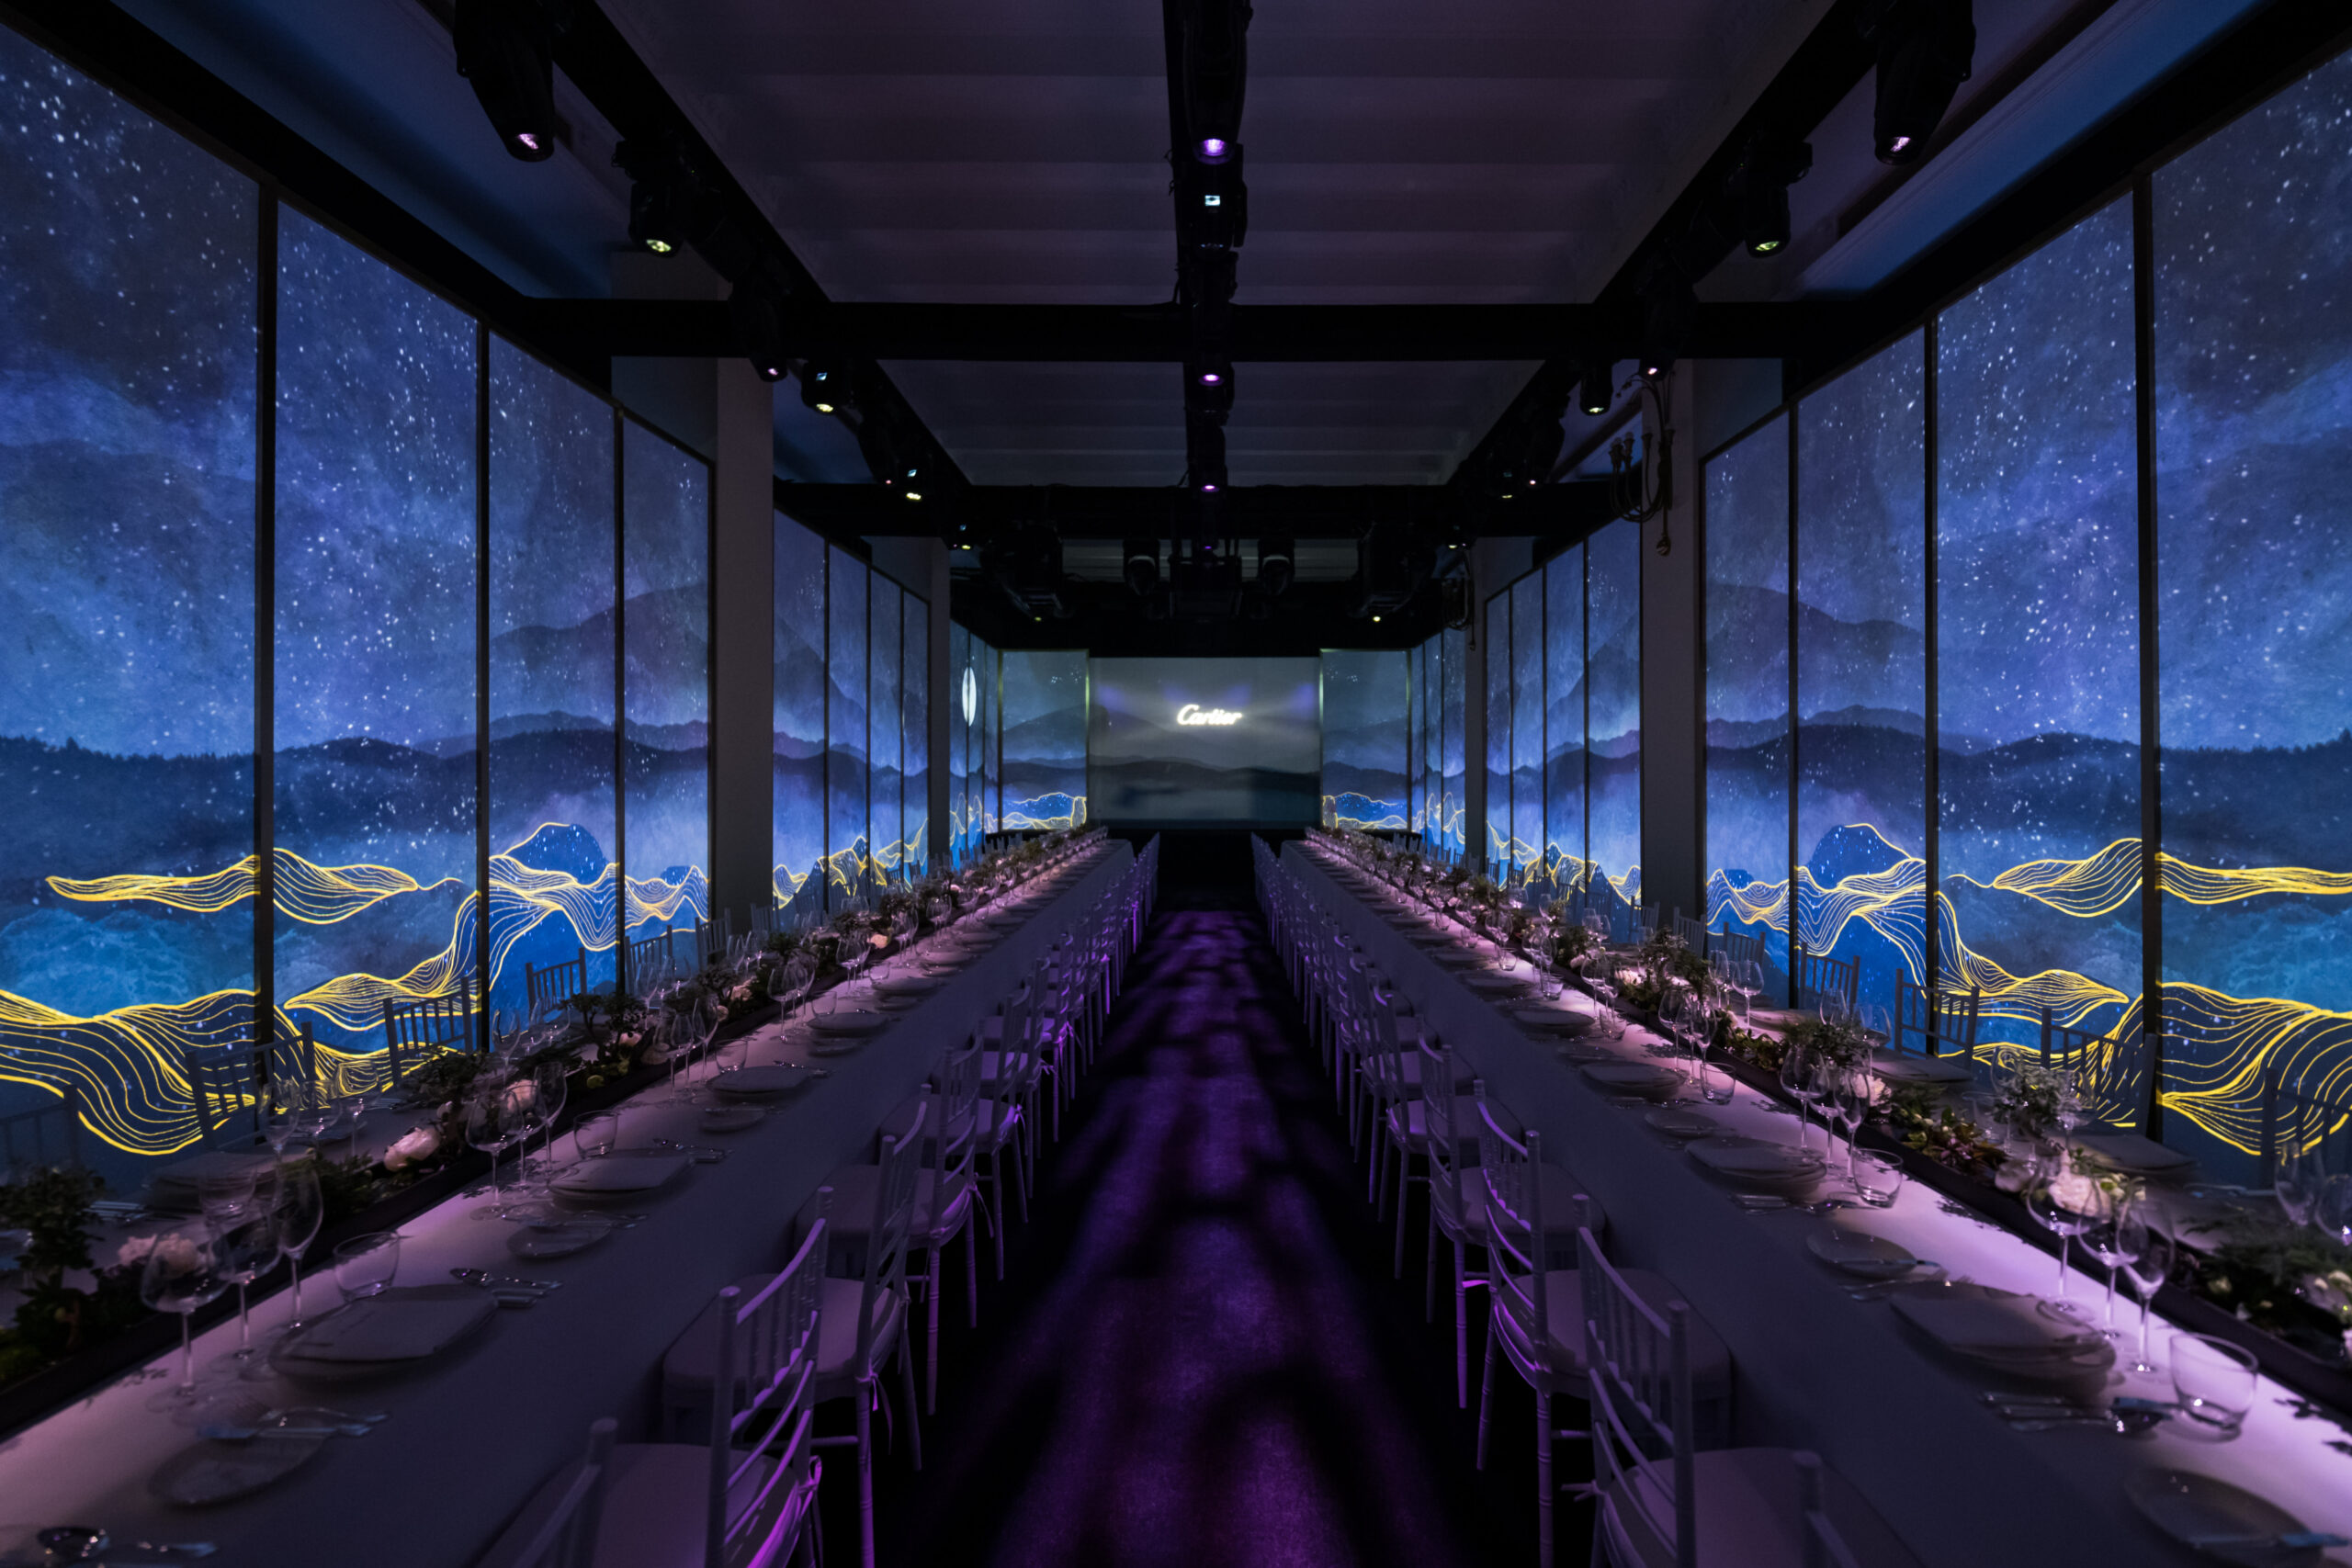 Cartier P66 Boutique Re-opening & Gala Dinner July 31st Shanghai – 1